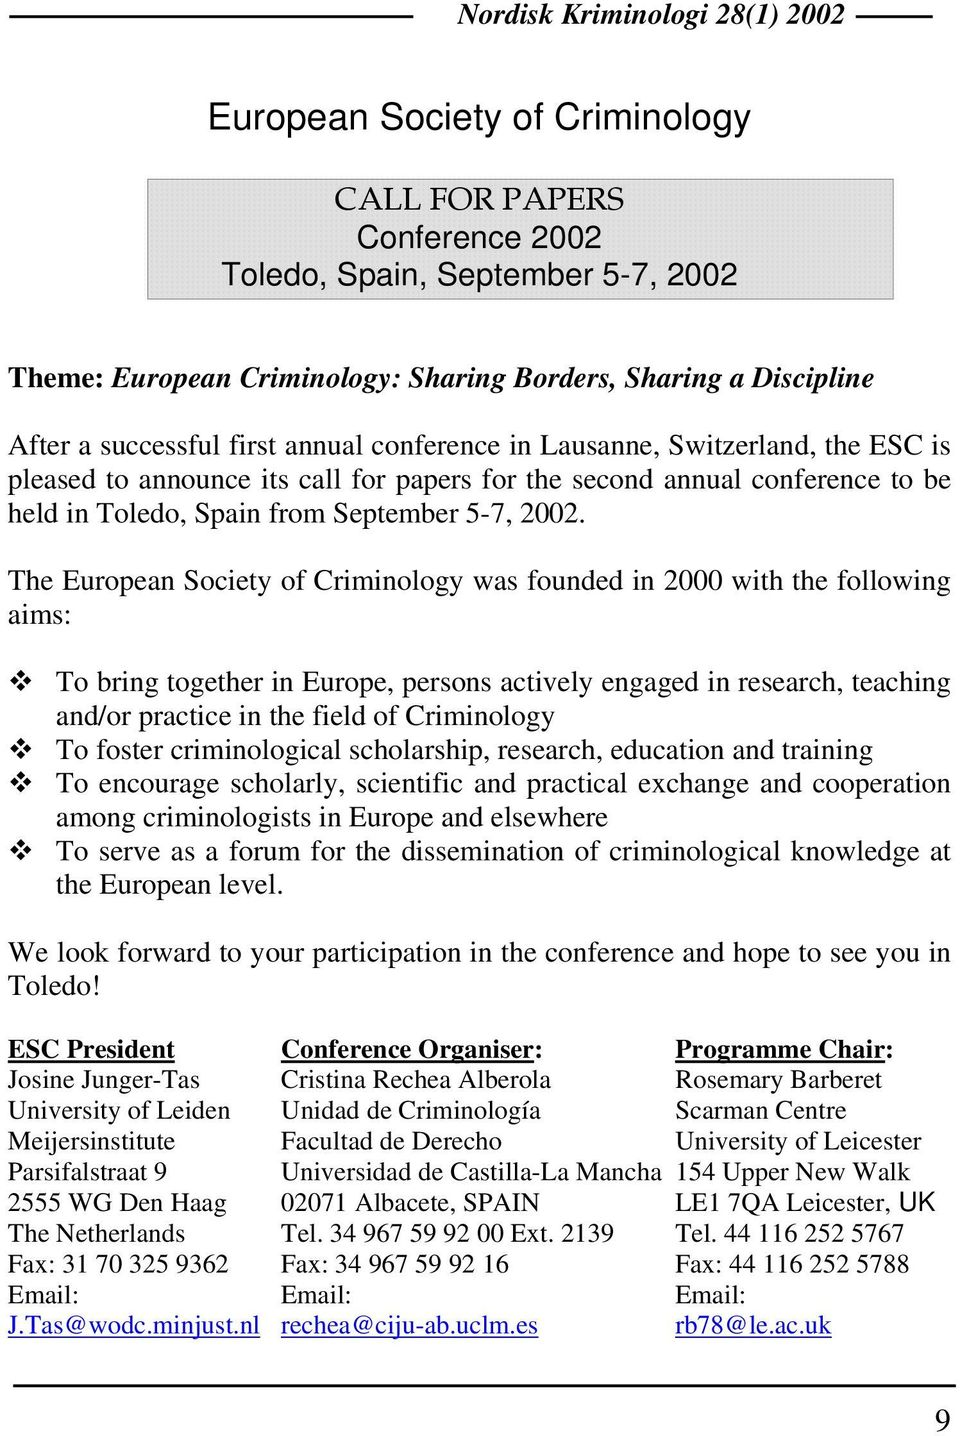 The European Society of Criminology was founded in 2000 with the following aims: To bring together in Europe, persons actively engaged in research, teaching and/or practice in the field of